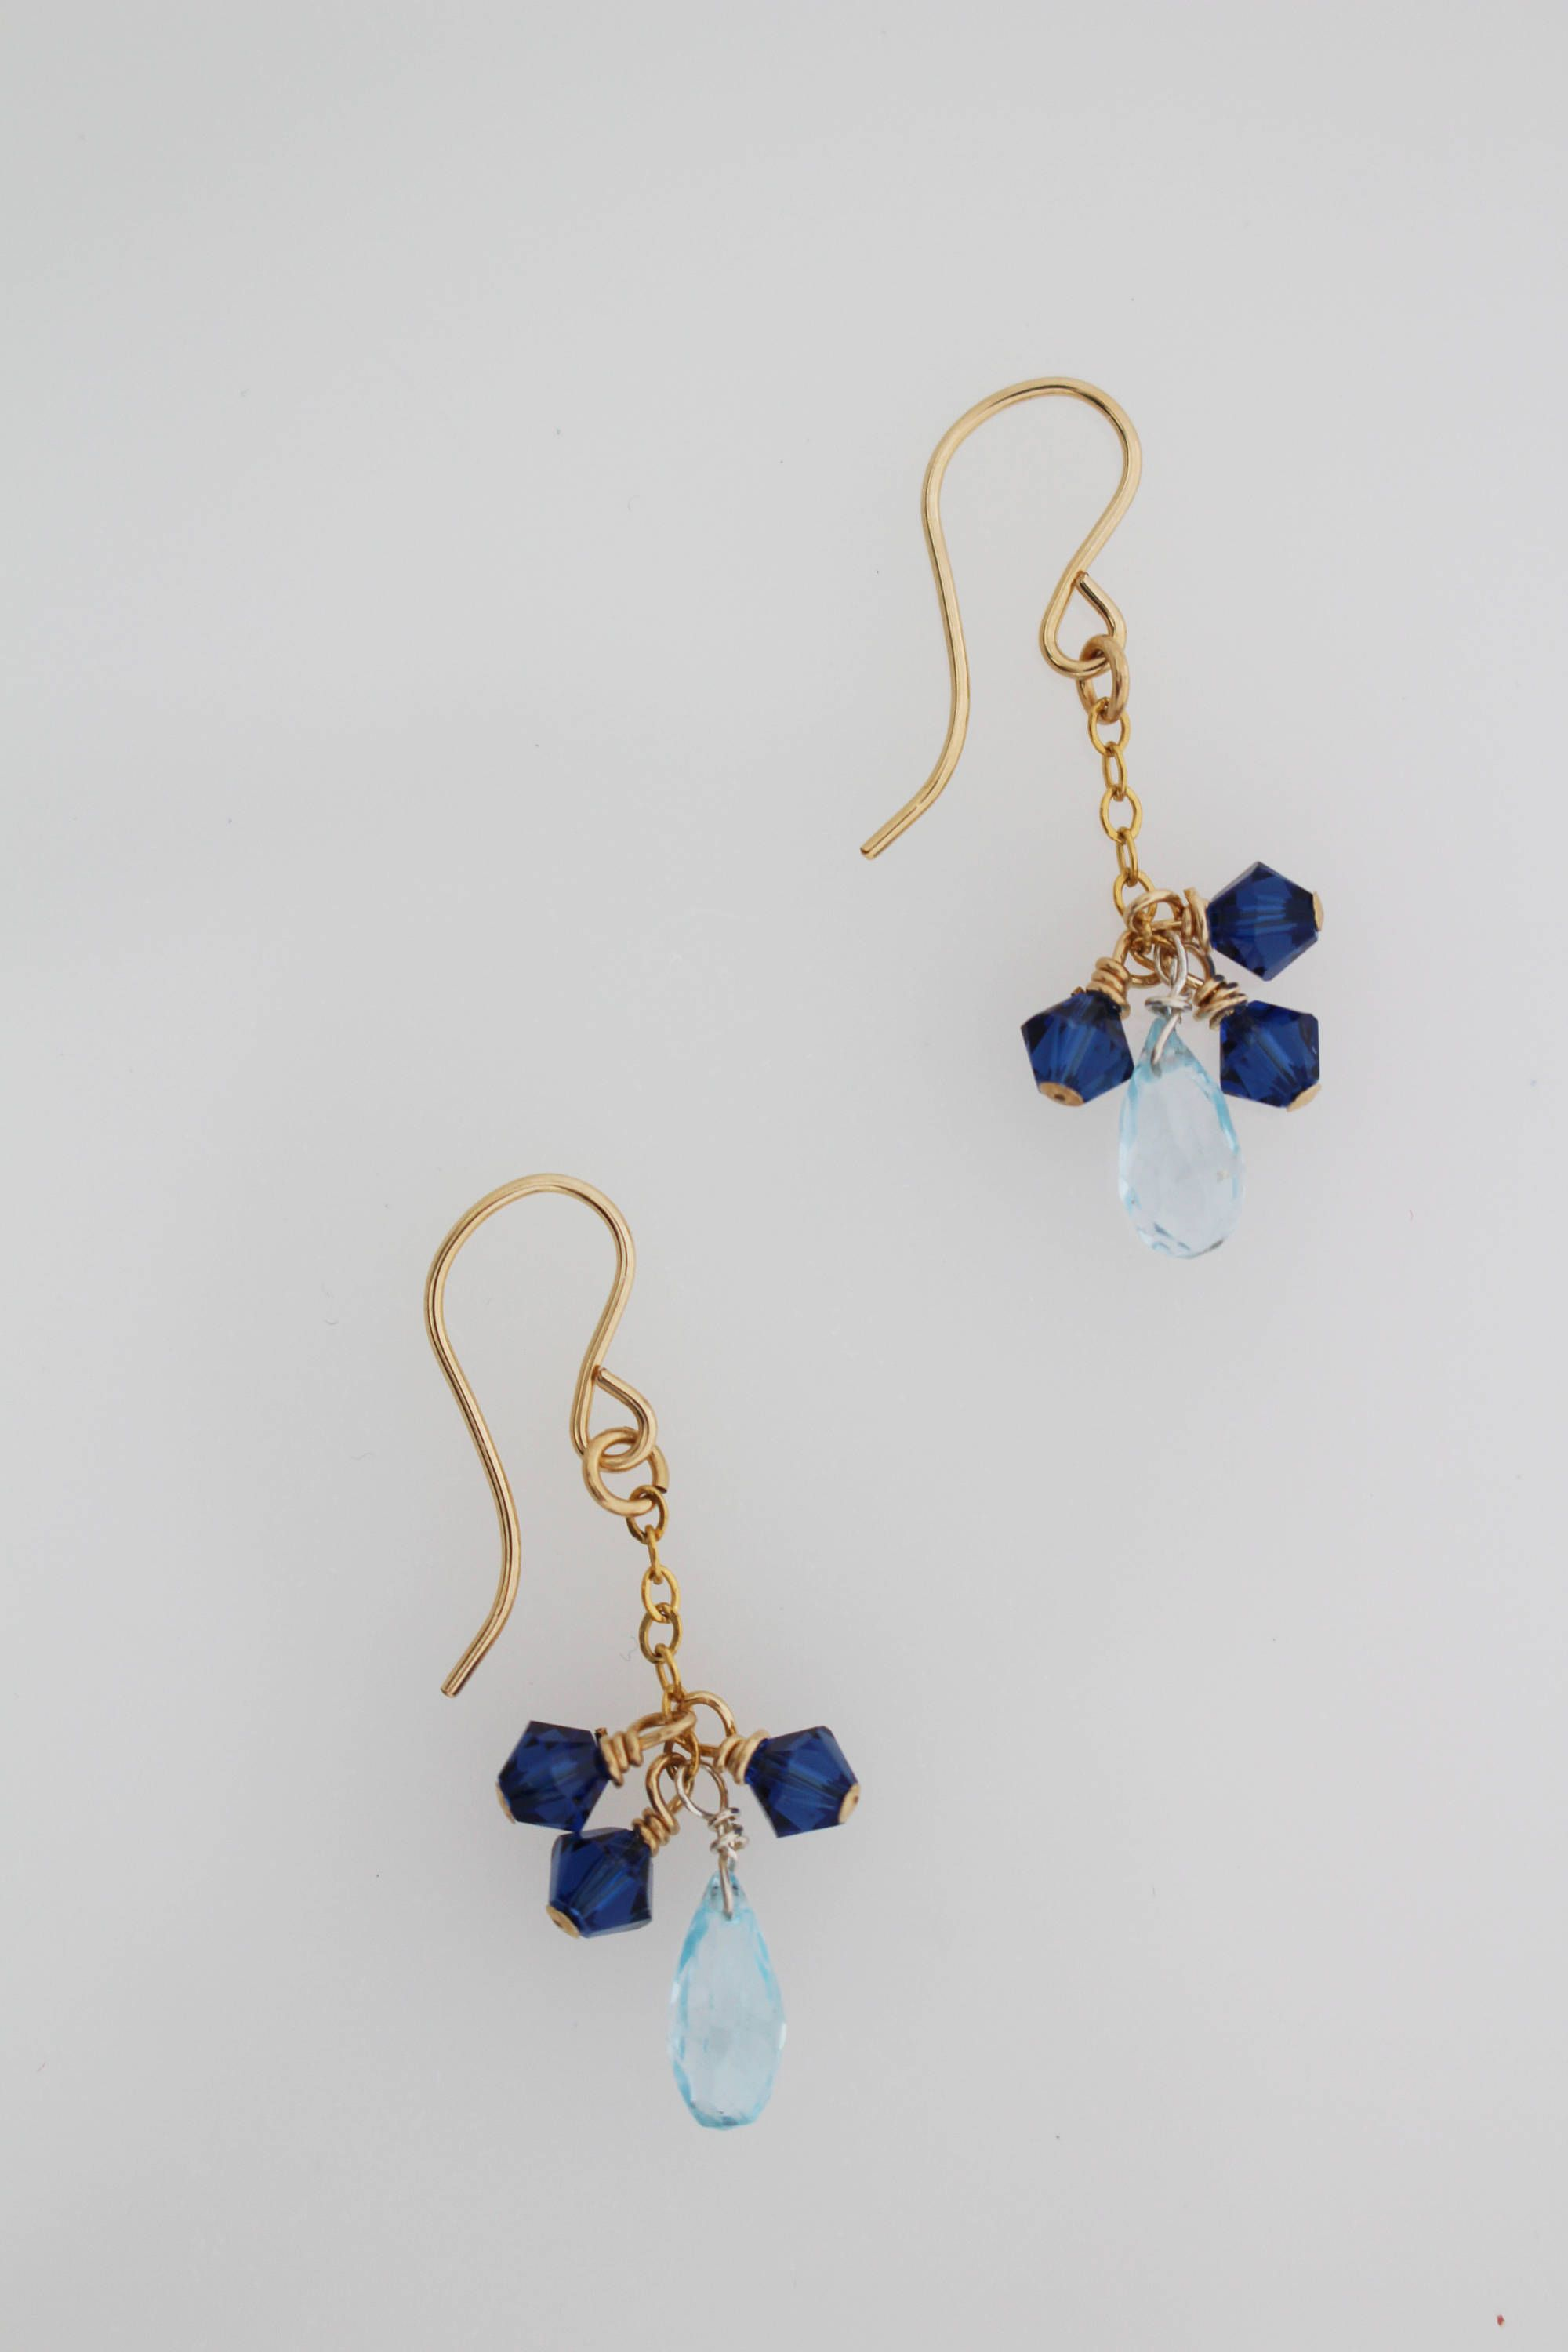 Blue Topaz Earrings With Dark Swarovski Crystals On Gold Plates Wire And Hook